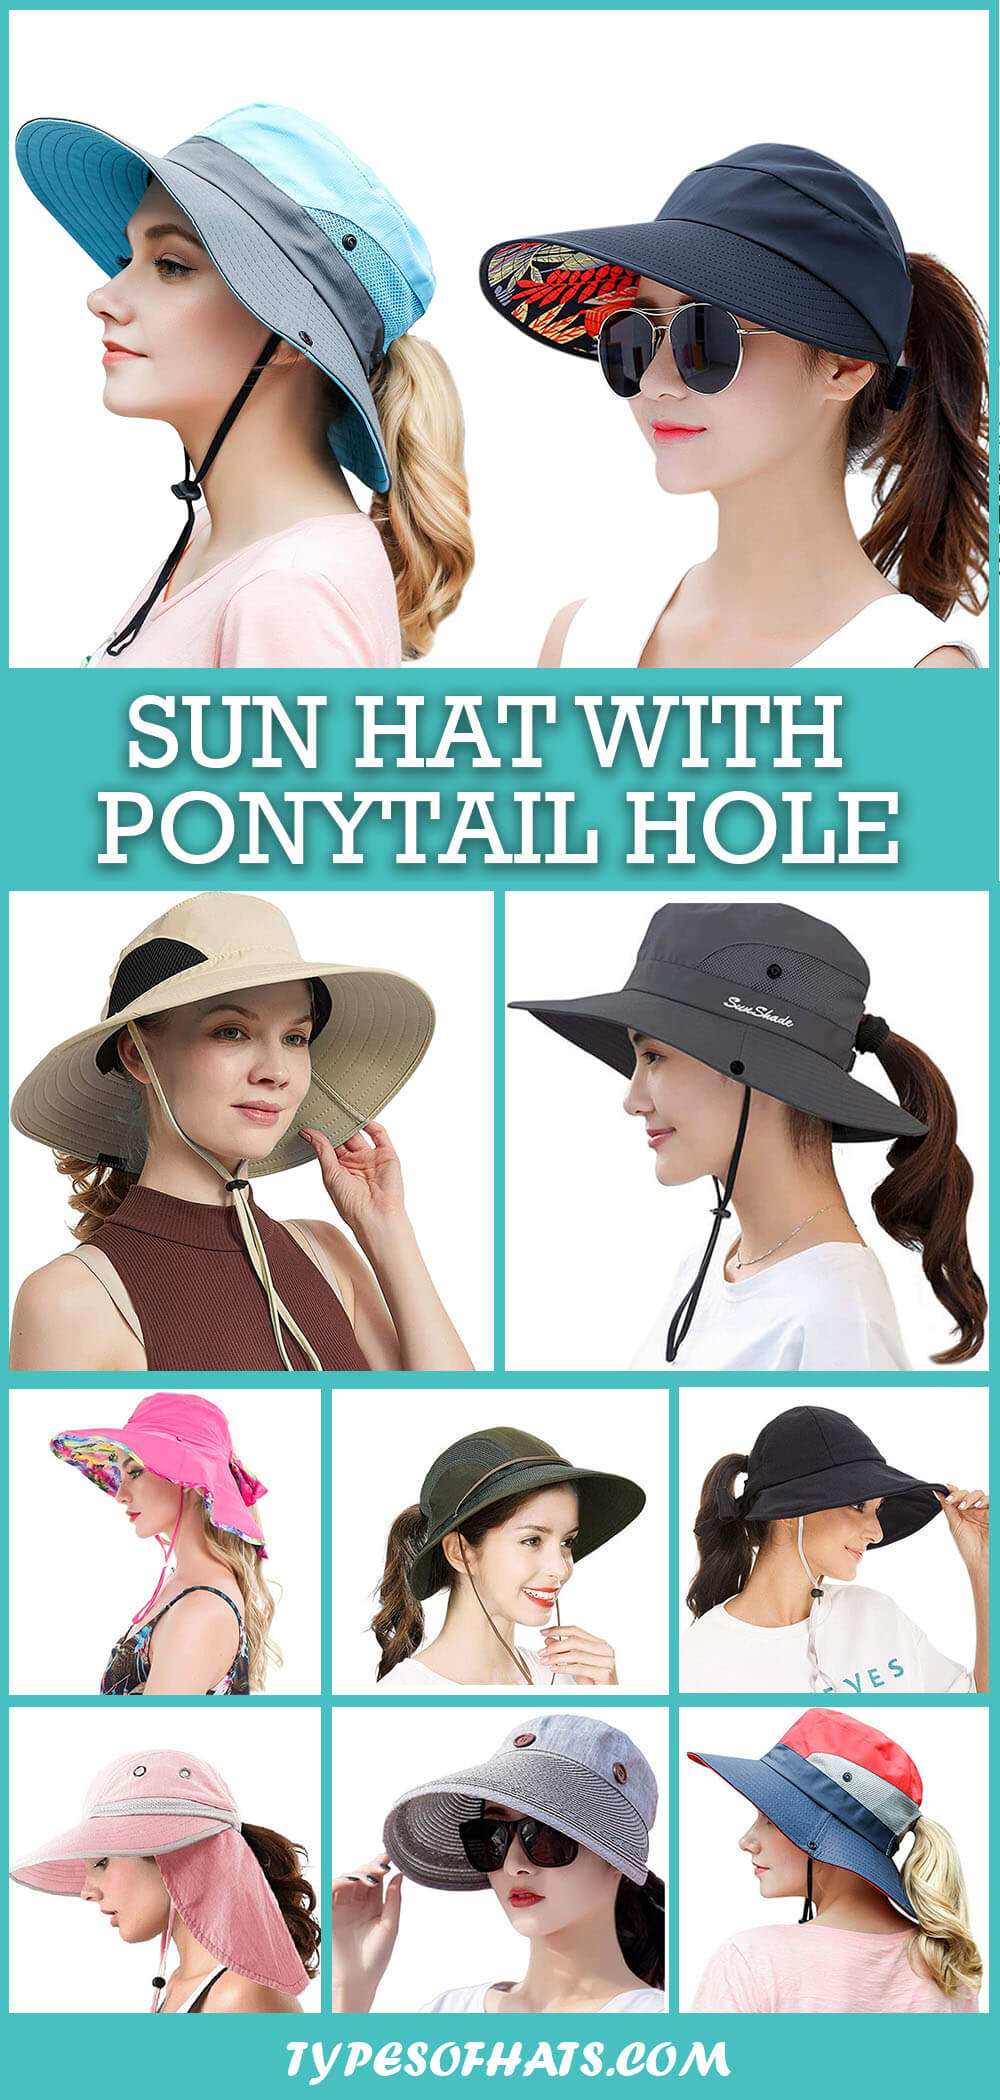 Sun-Hat-With-Ponytail-Hole